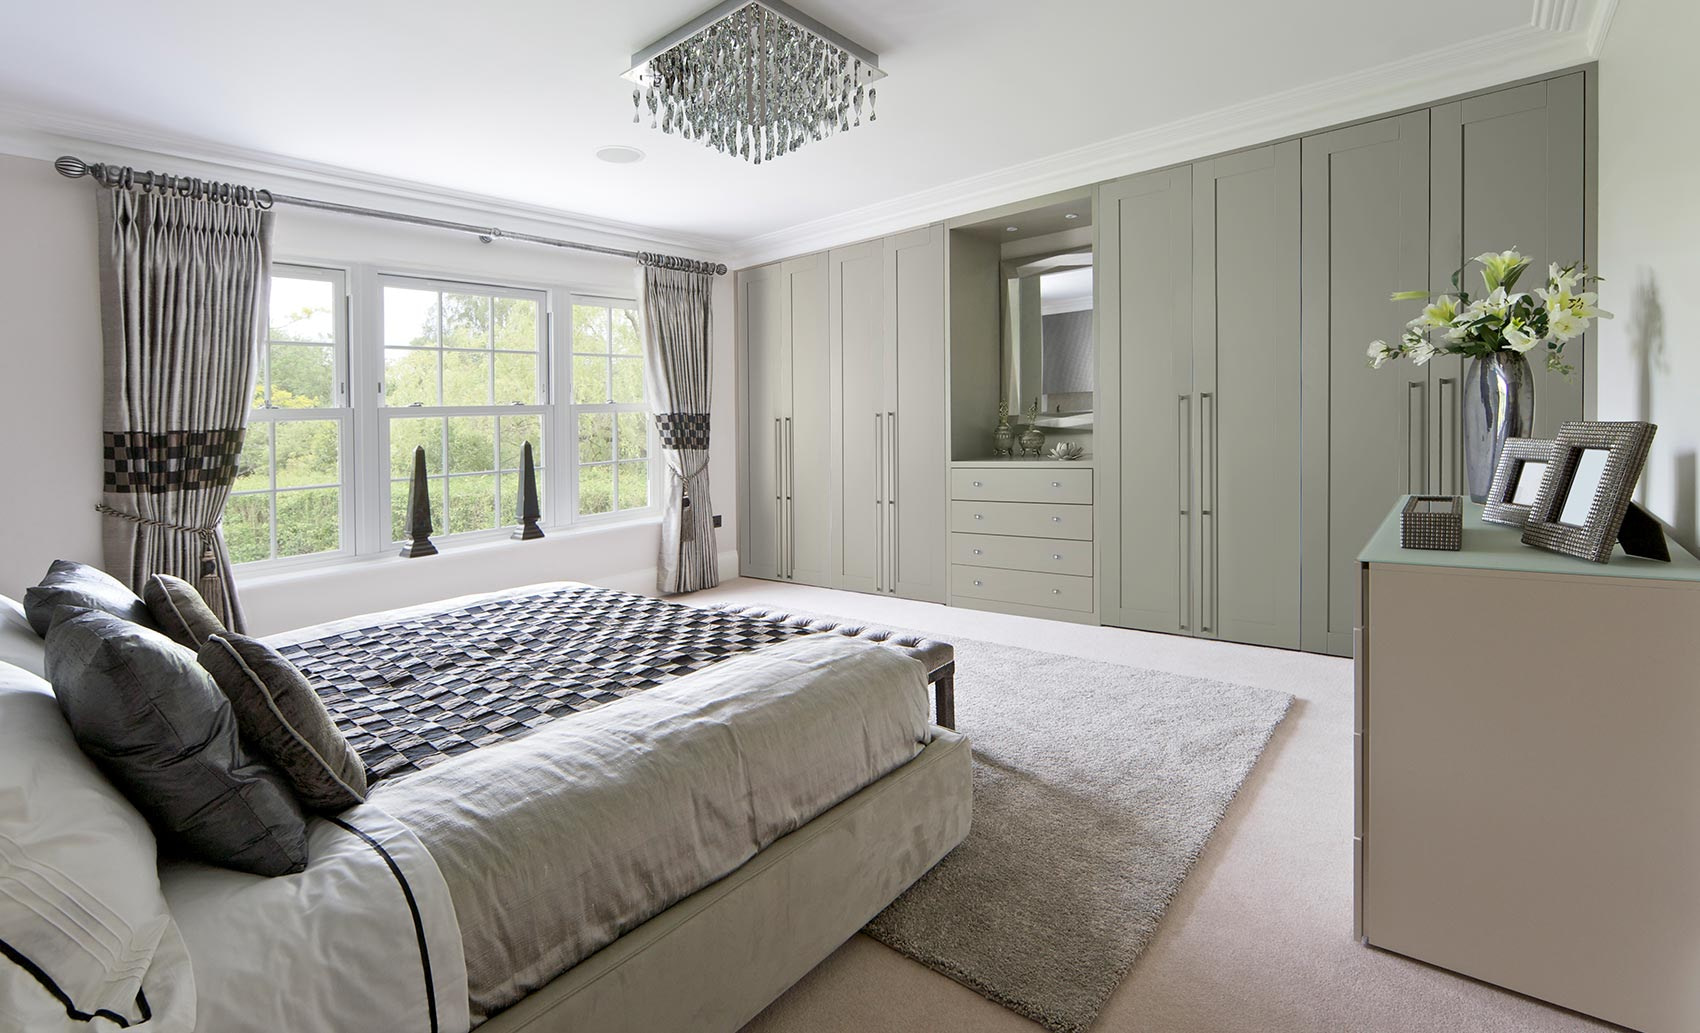 Wardrobes for the bedroom by Draks